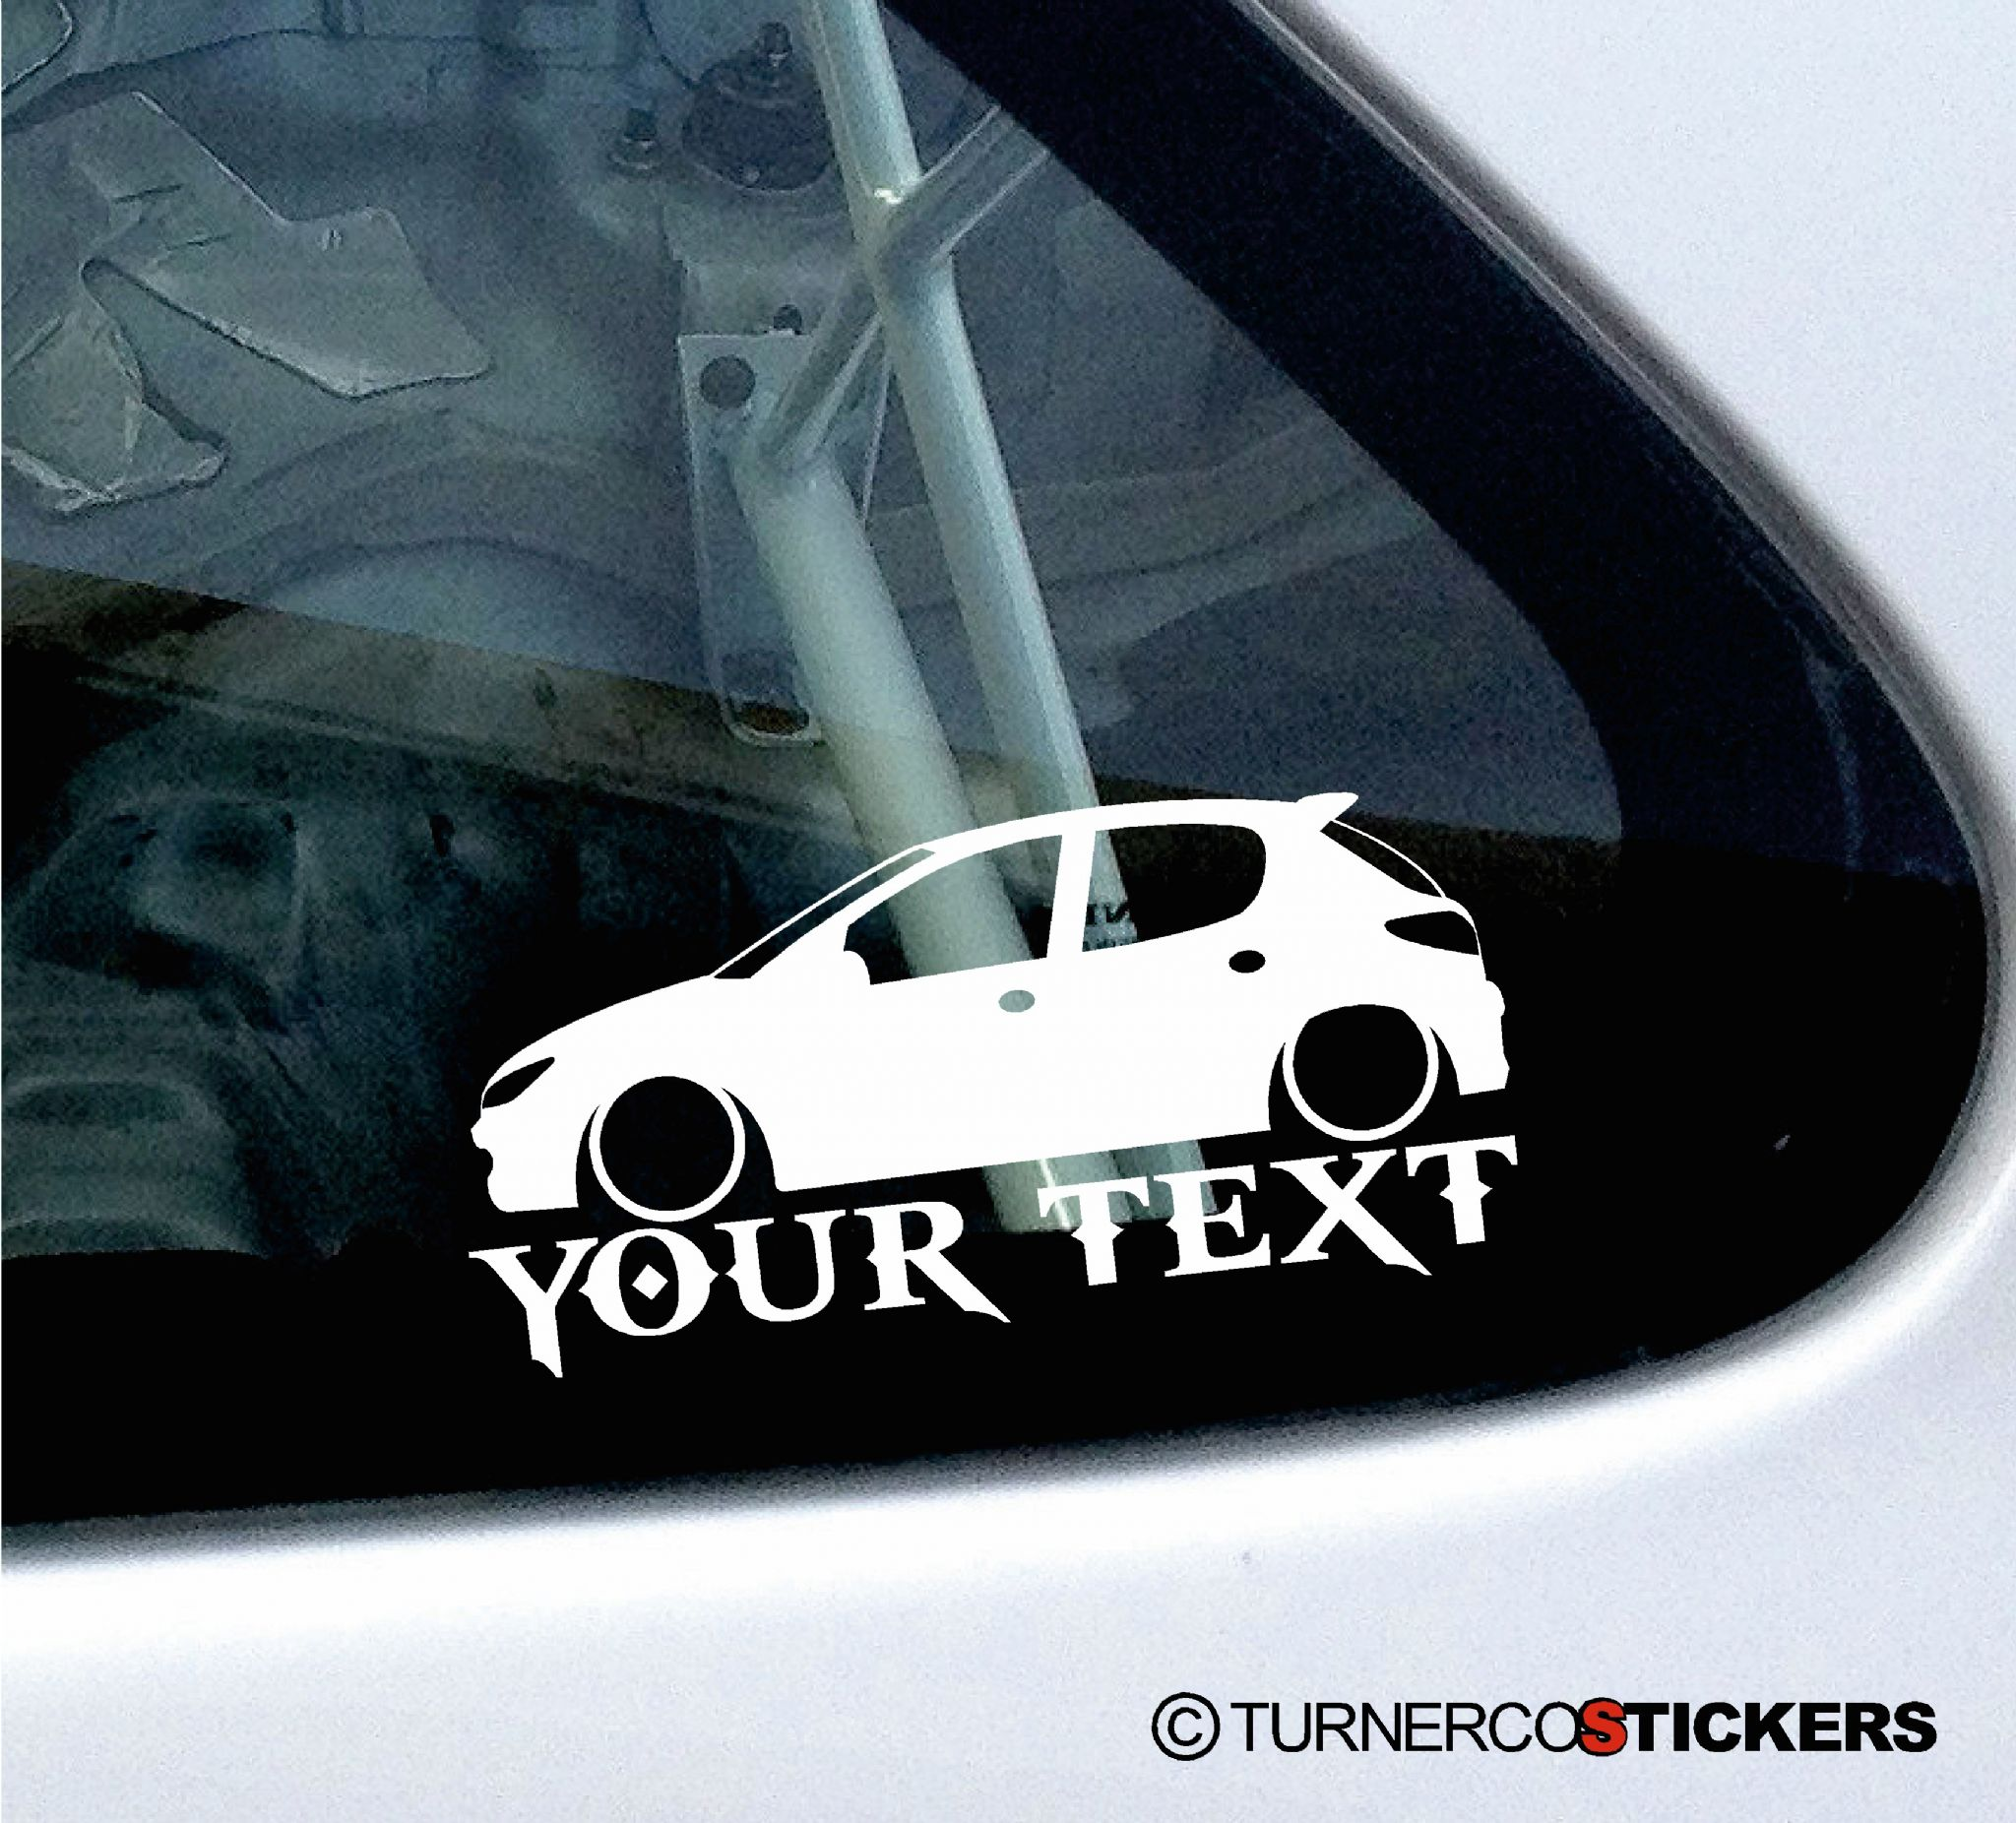 2x custom your text lowered car stickers - peugeot 206 hdi 5-door